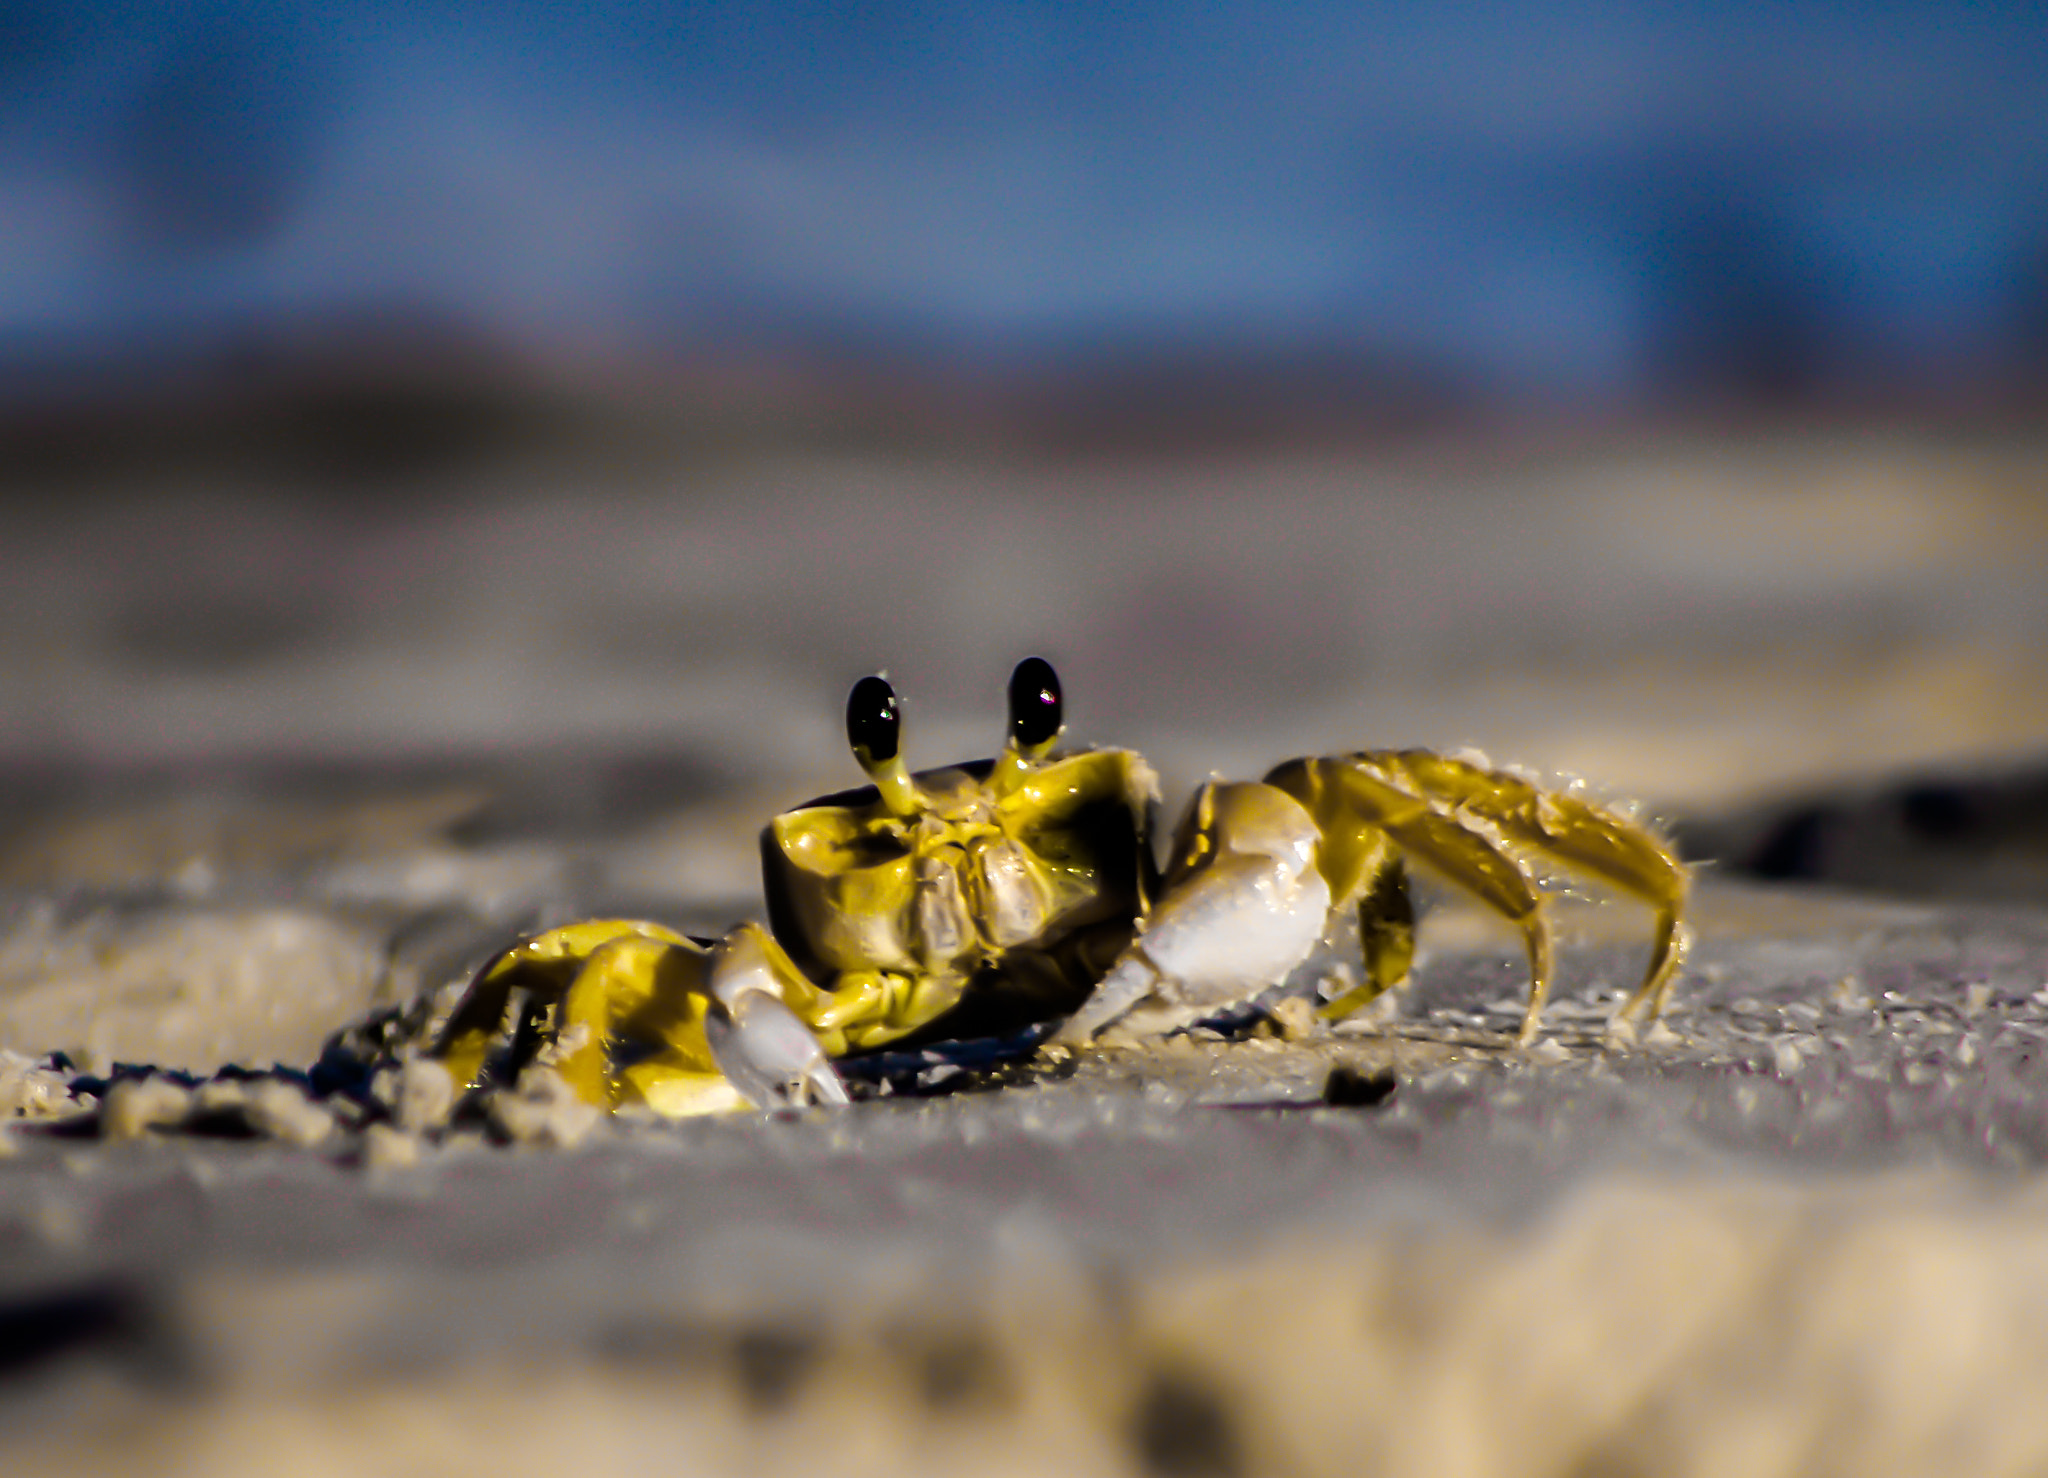 Photograph yellow crab by AF Stabile on 500px